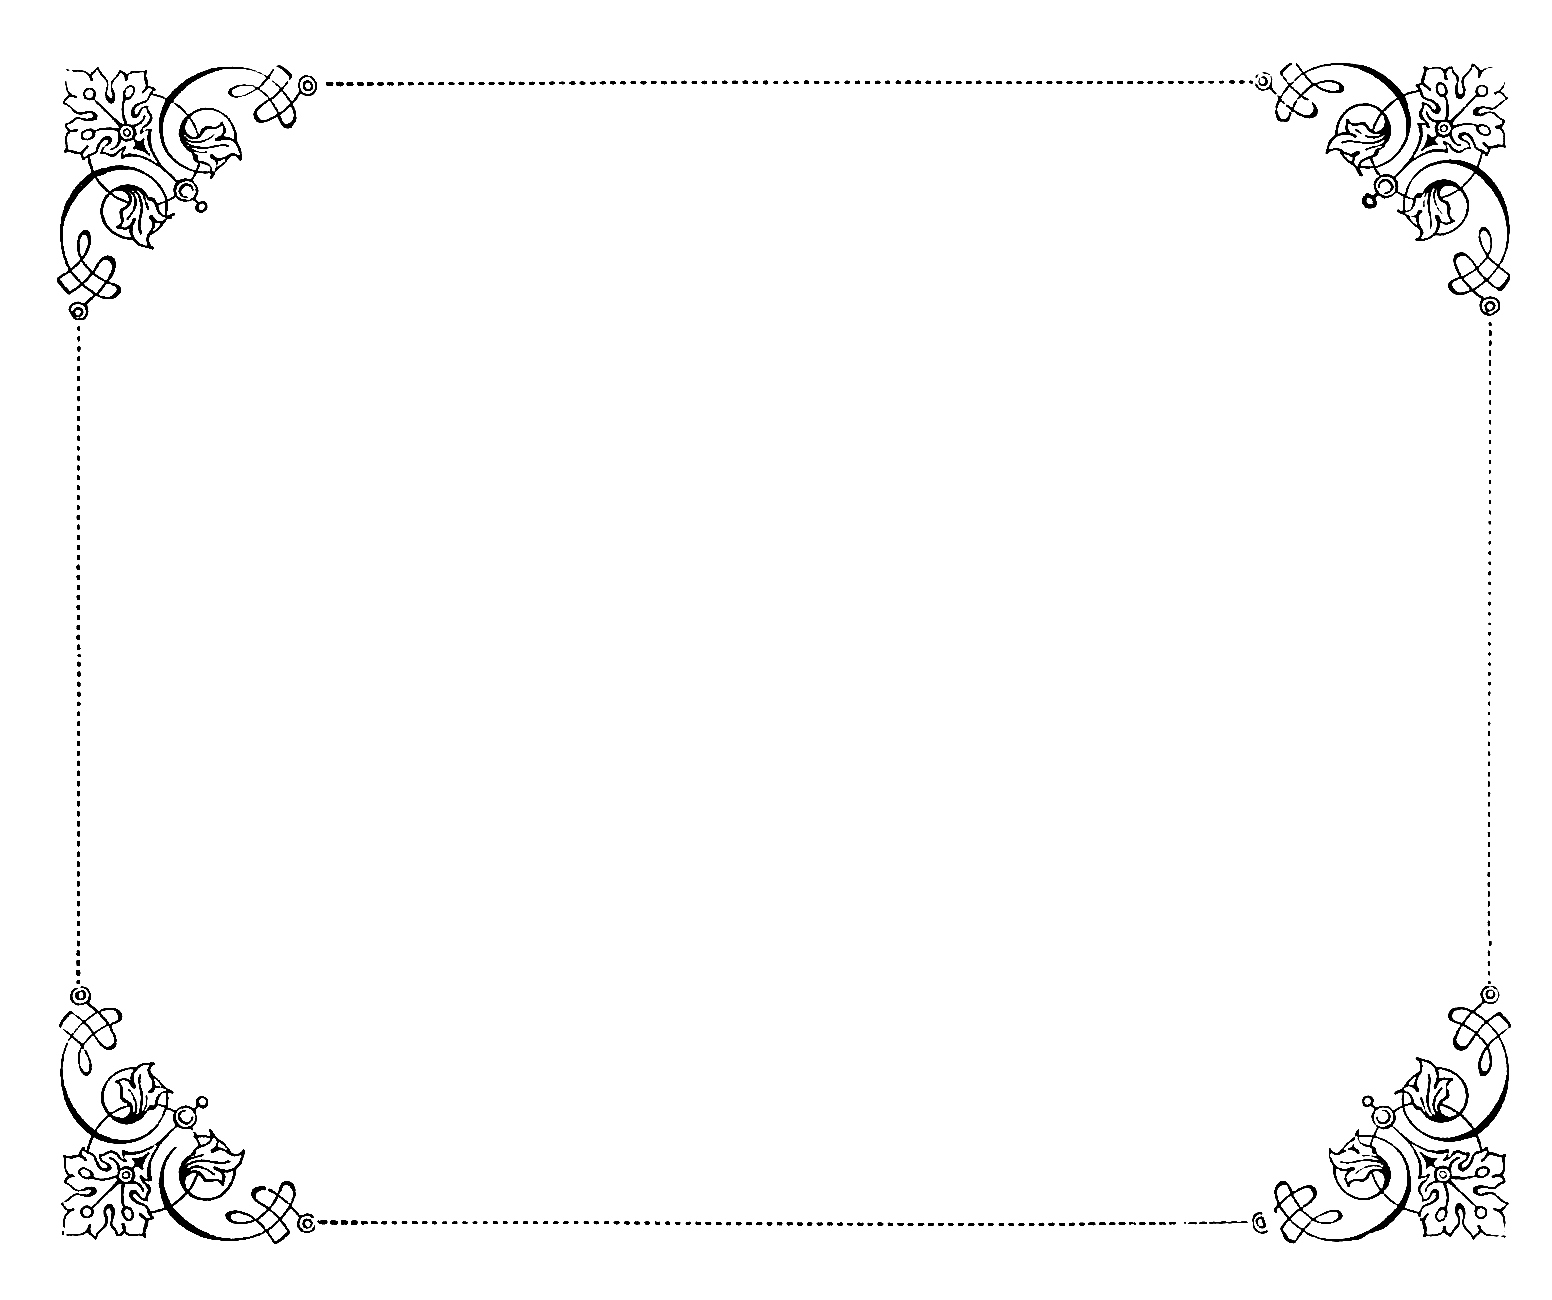 Download Free png Letterhead Border Png Fancy Borders Free.